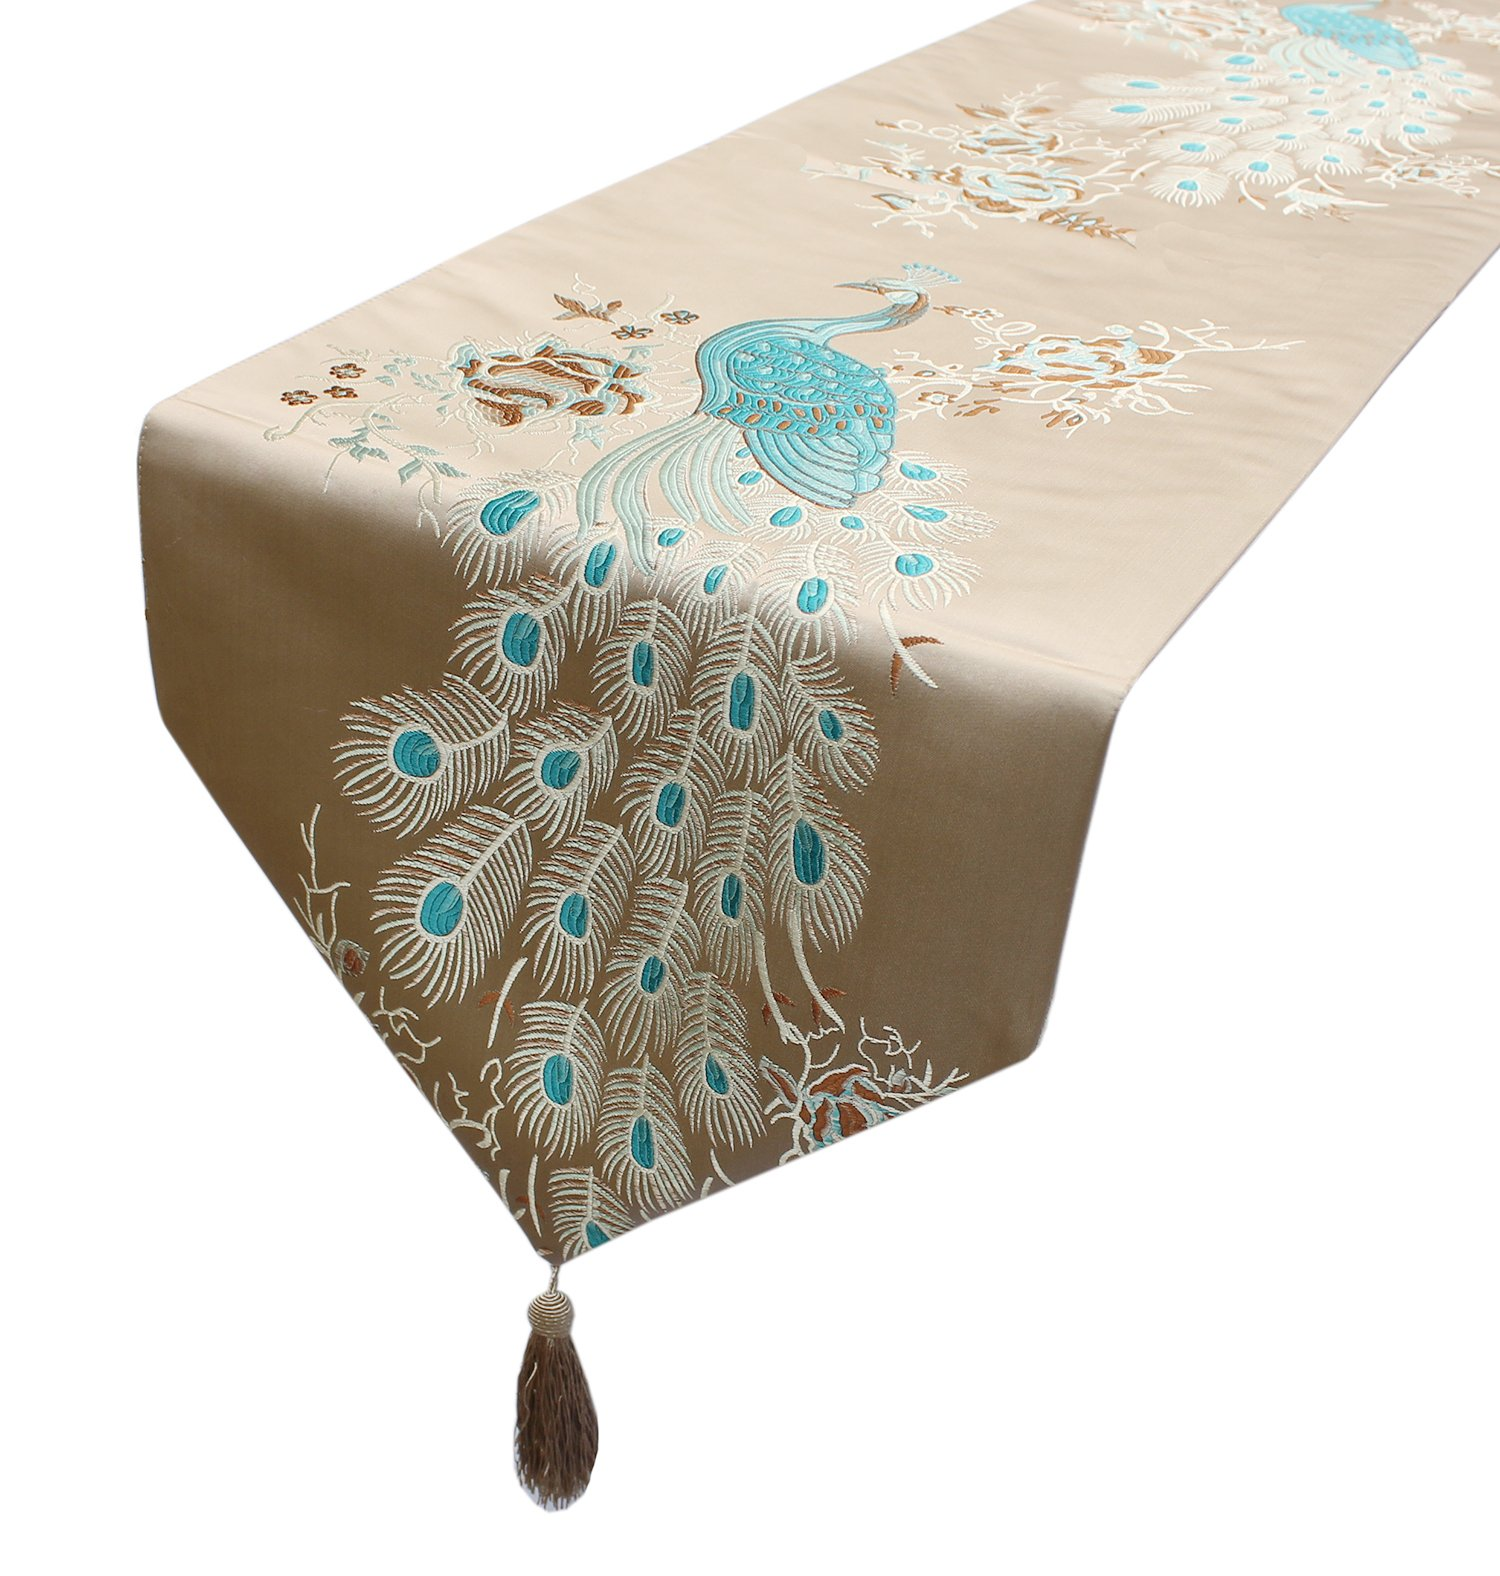 MAGILONA Tablecover Home Decorative Thanksgiving Satin Smooth Embroidered Peacock Floral Pattern Table Runner Kitchen Tassel Wedding Dining Party 13x83 In (Brown)